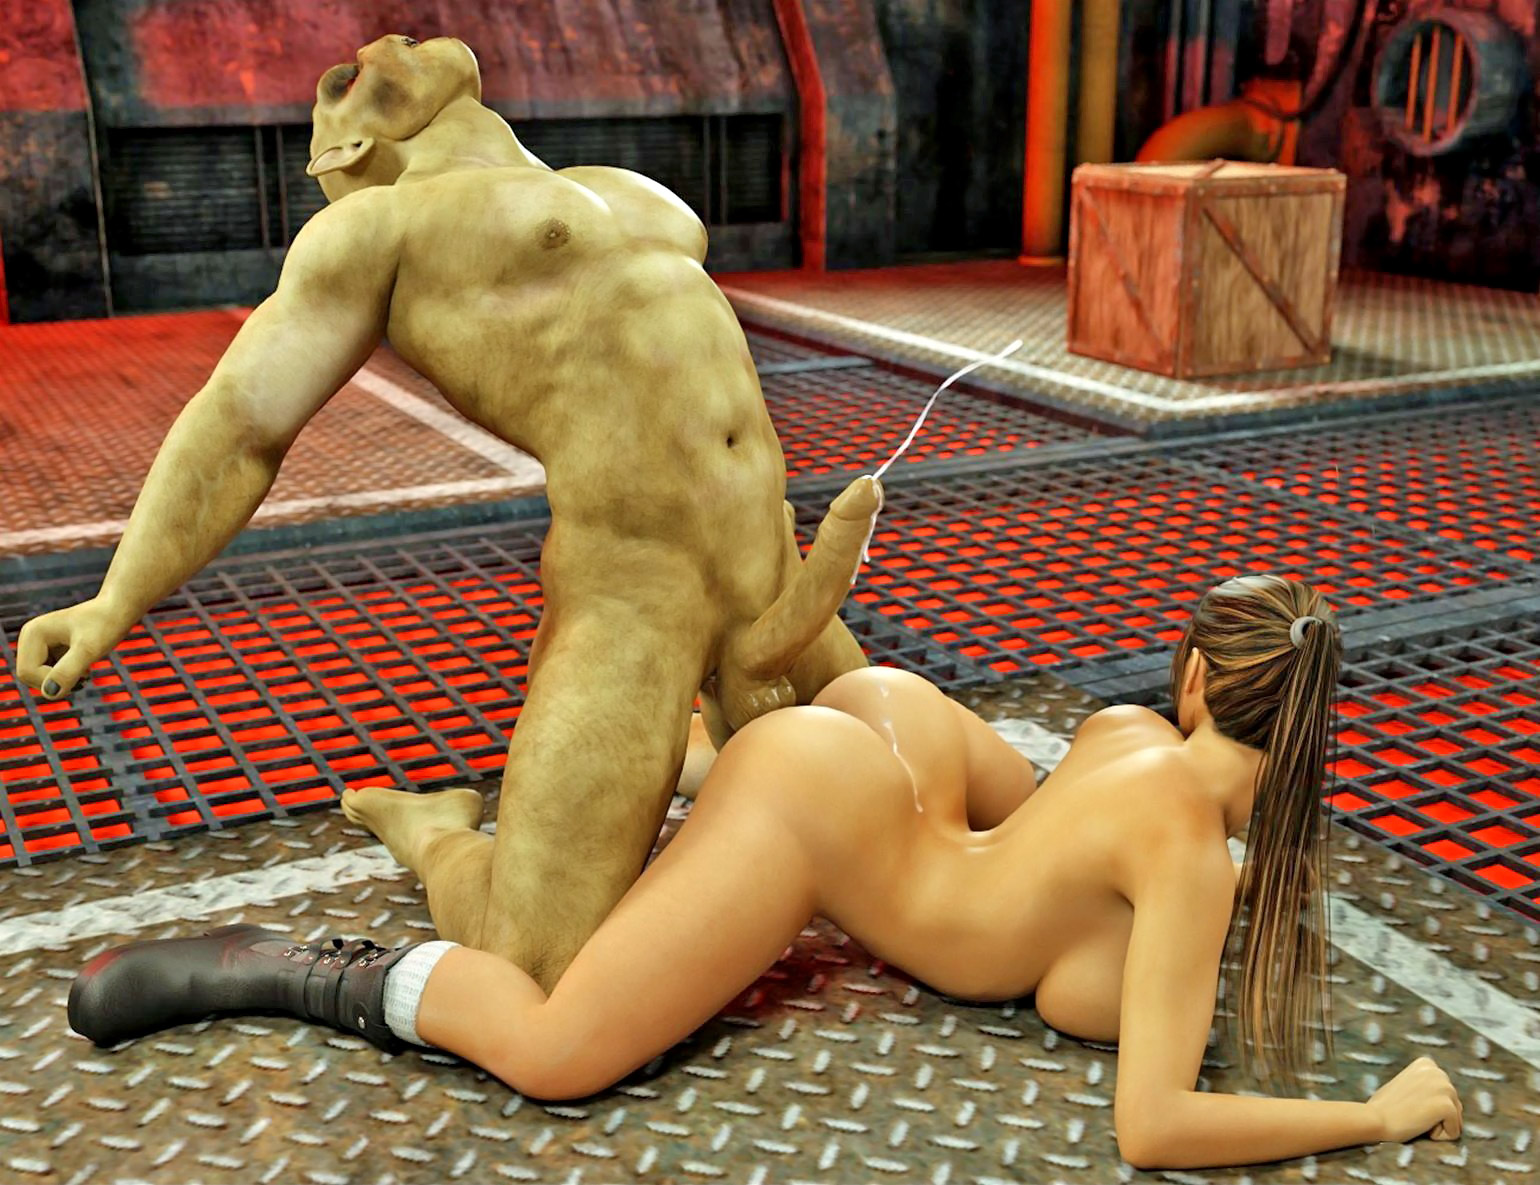 Lara croft fucked by monsters pics sex tube